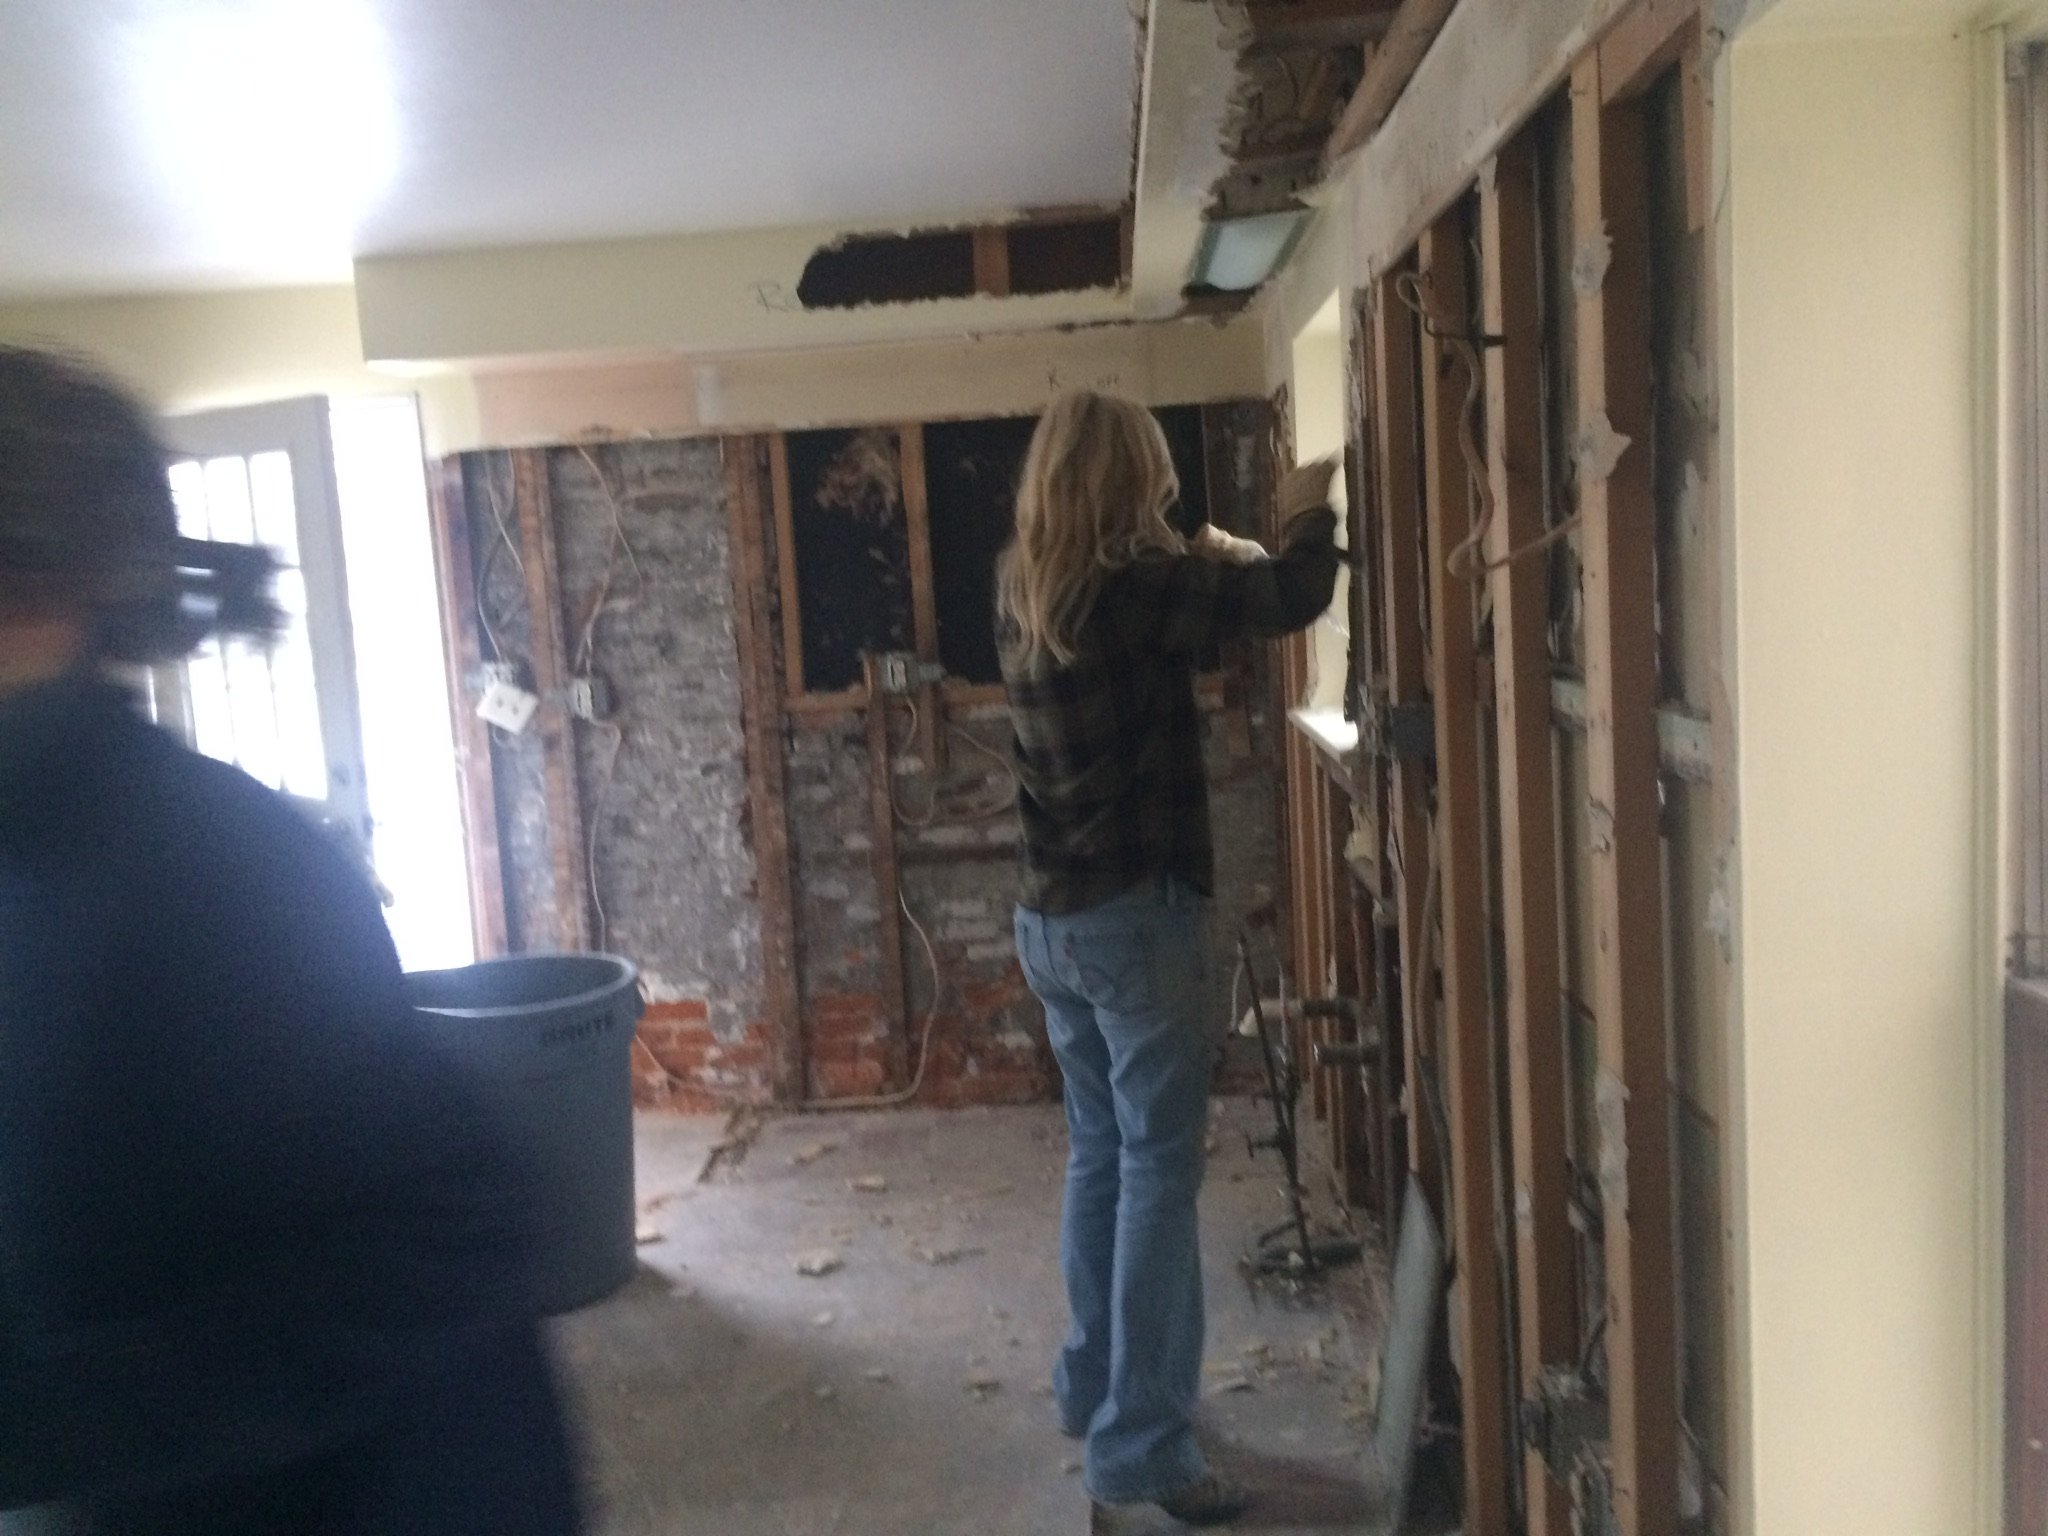 Ripping out the drywall